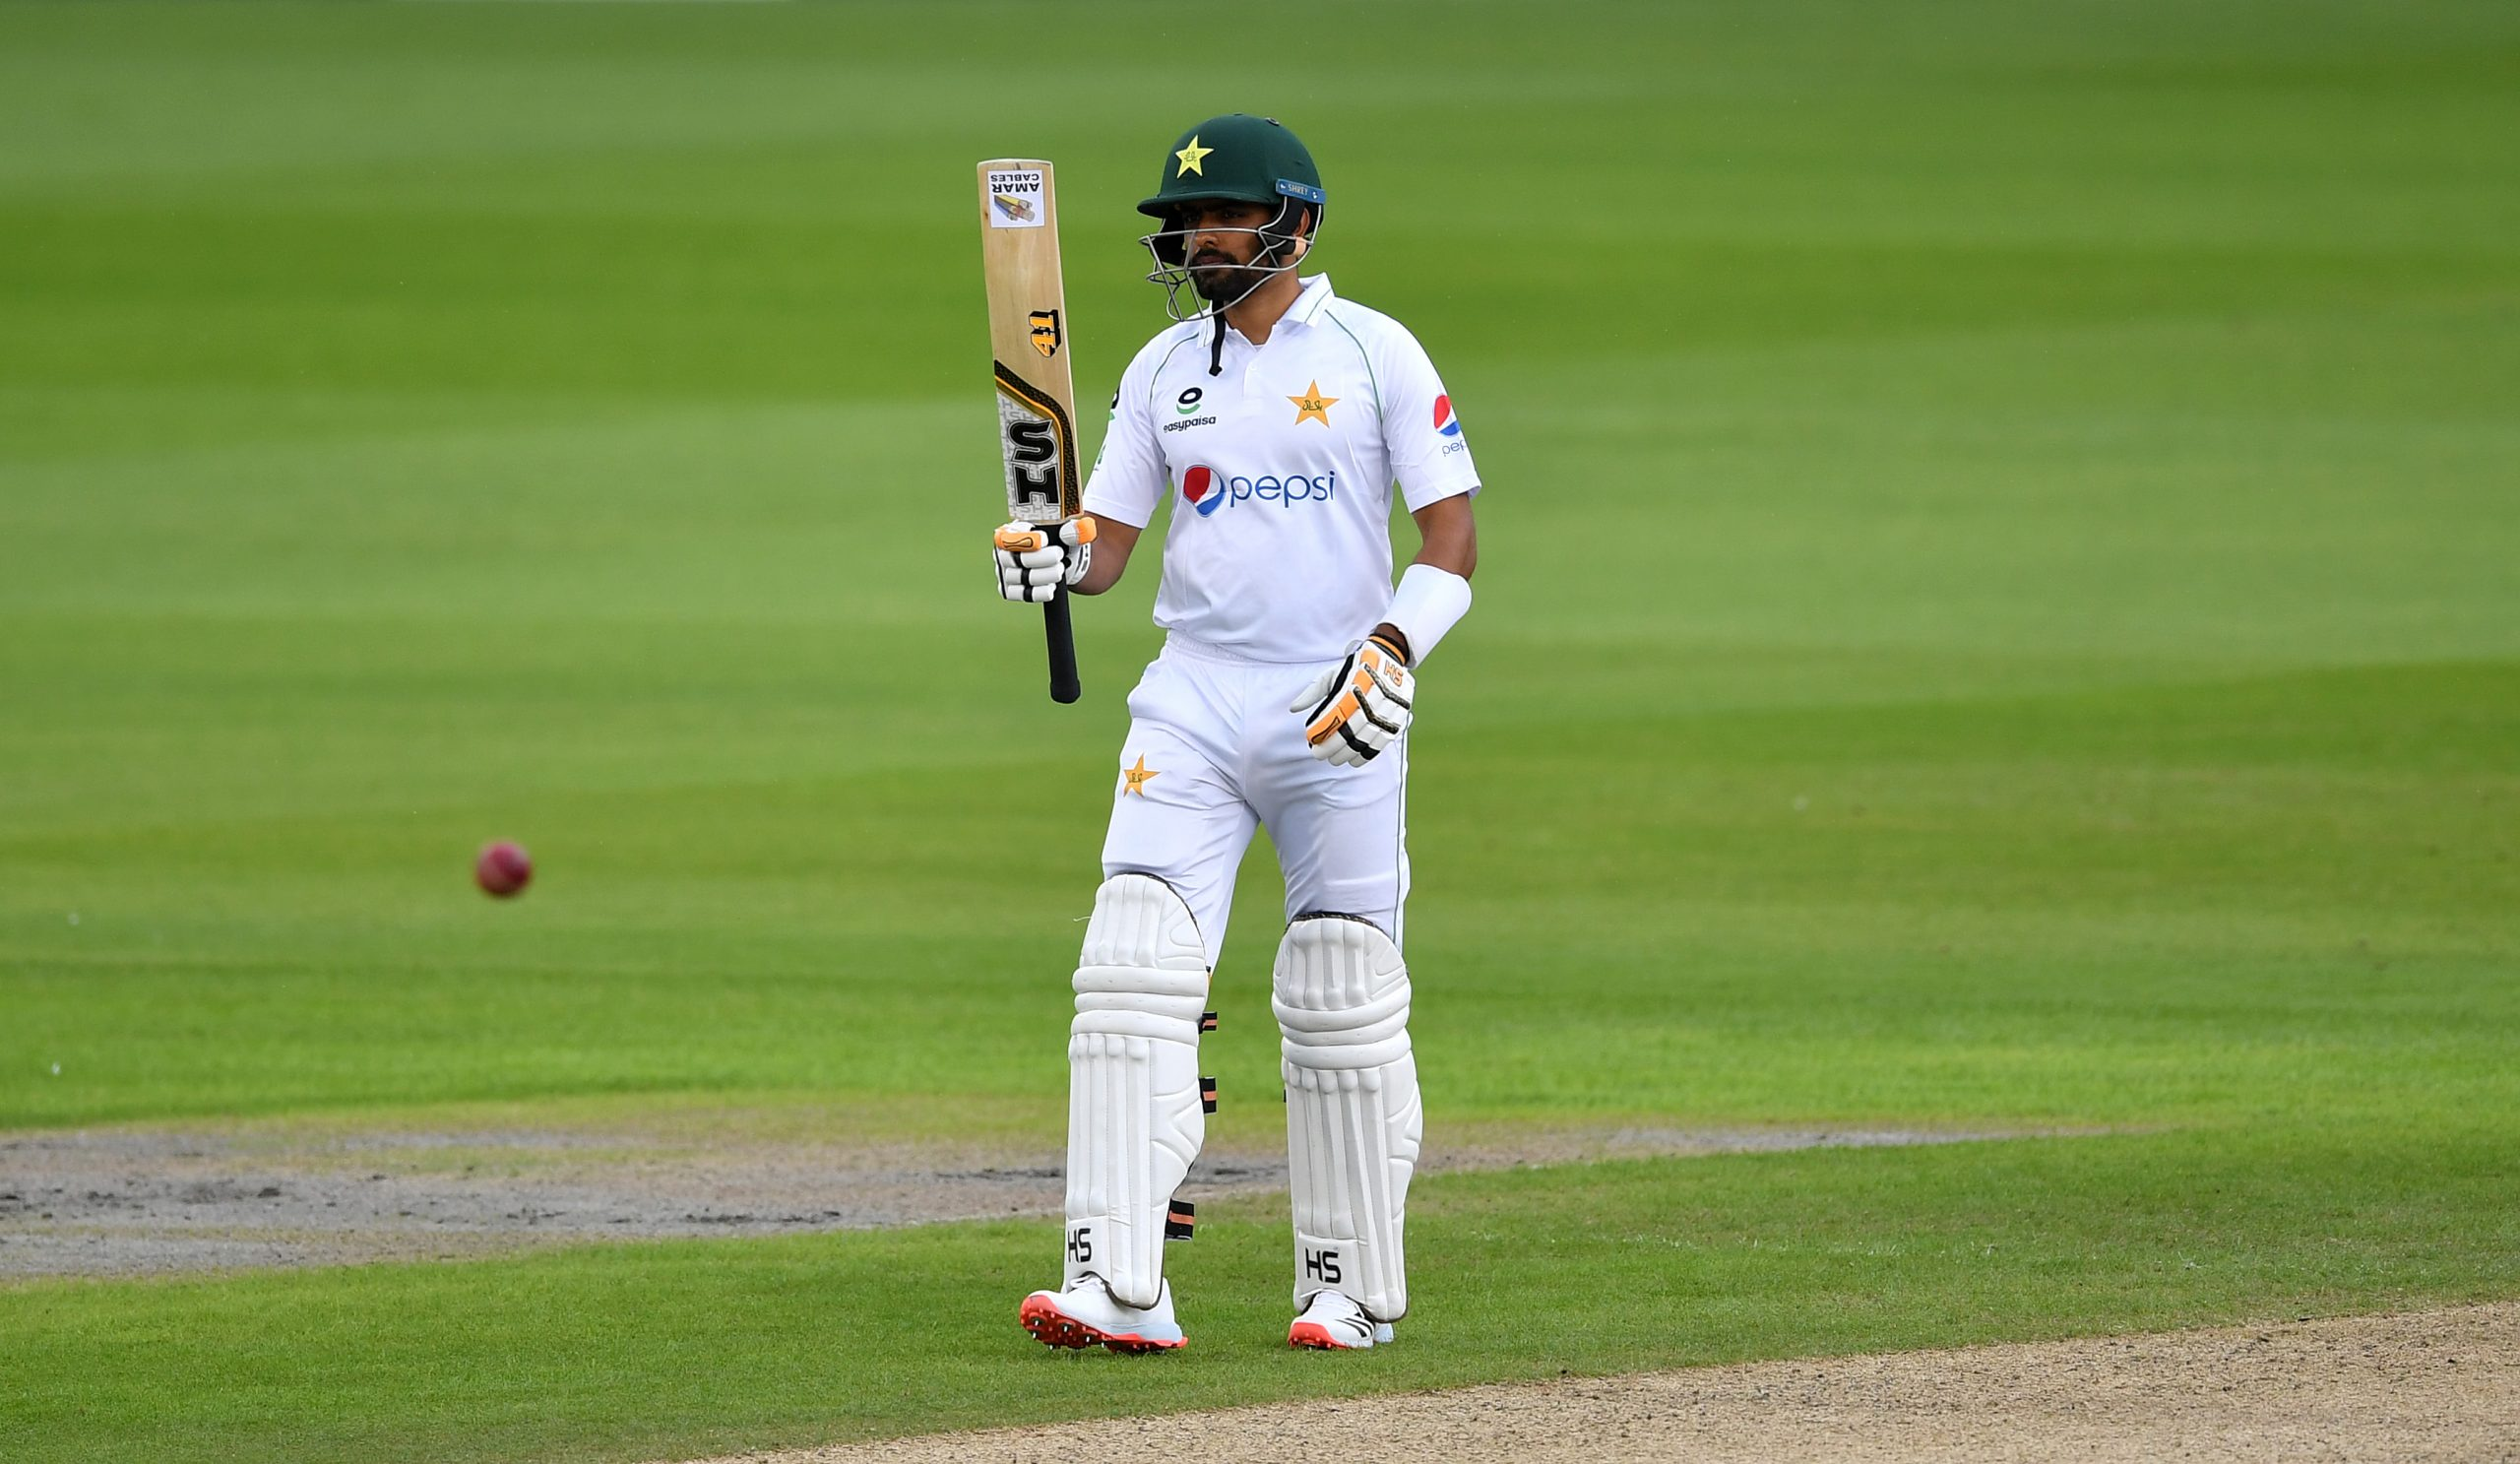 MANCHESTER, ENGLAND - AUGUST 05: Babar Azam of Pakistan celebrates reaching fifty  during Day One of the 1st #RaiseTheBat Test Match between England and Pakistan at Emirates Old Trafford on August 05, 2020 in Manchester, England. (Photo by Dan Mullan/Getty Images)